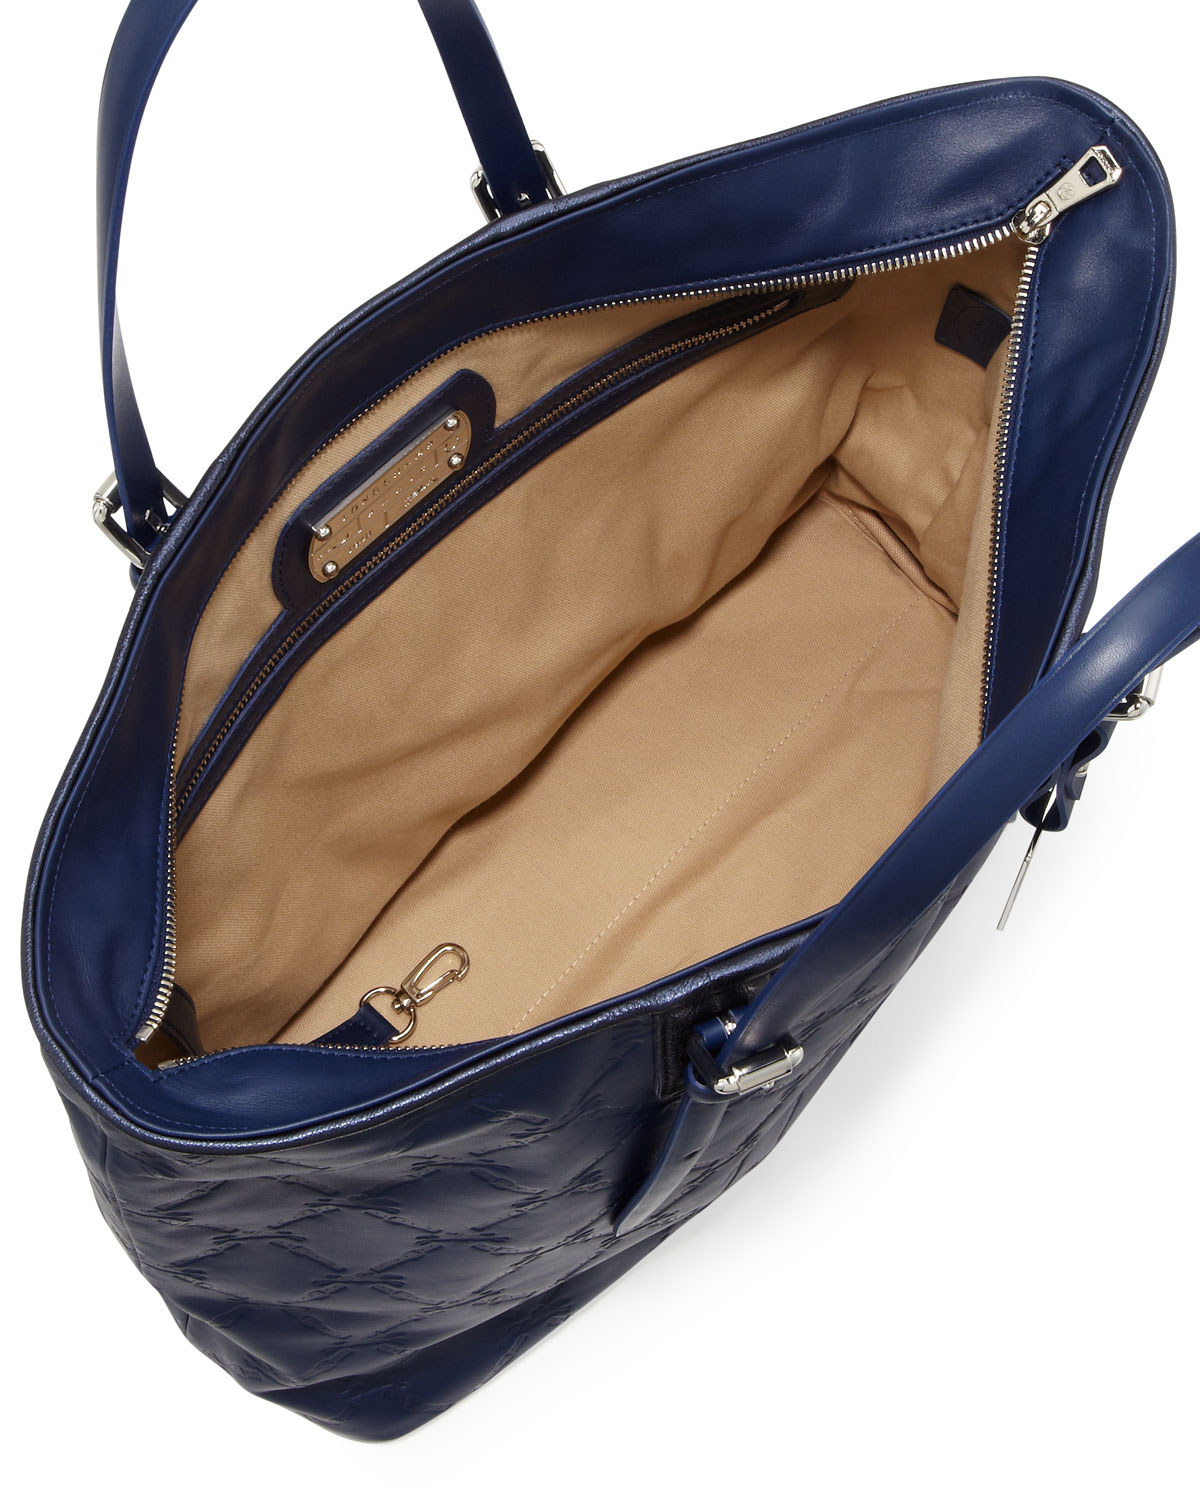 Lyst - Longchamp Lm Cuir Large Tote Bag in Blue 720f534ecb